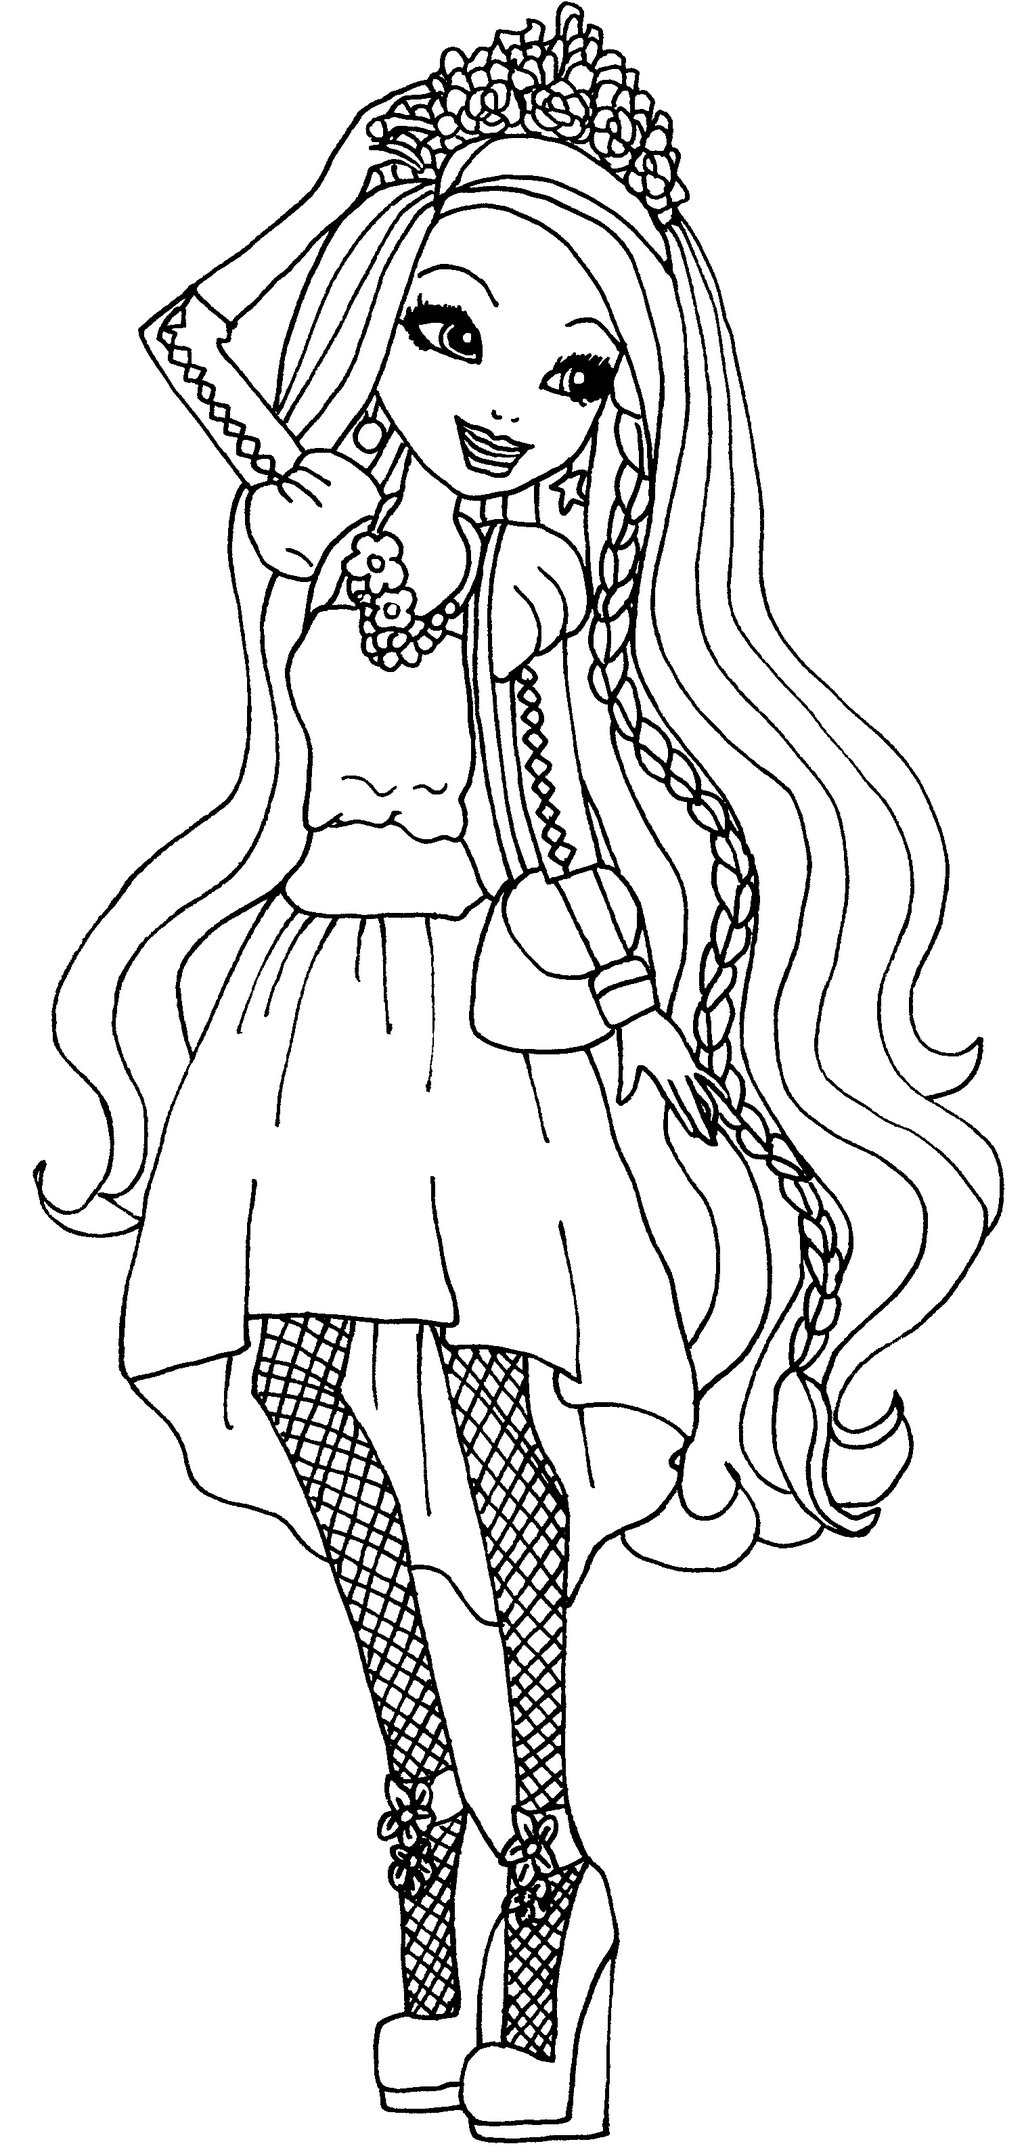 Charmant Coloriage Ever After High 50 Avec supplémentaire Coloriage Pages with Coloriage Ever After High